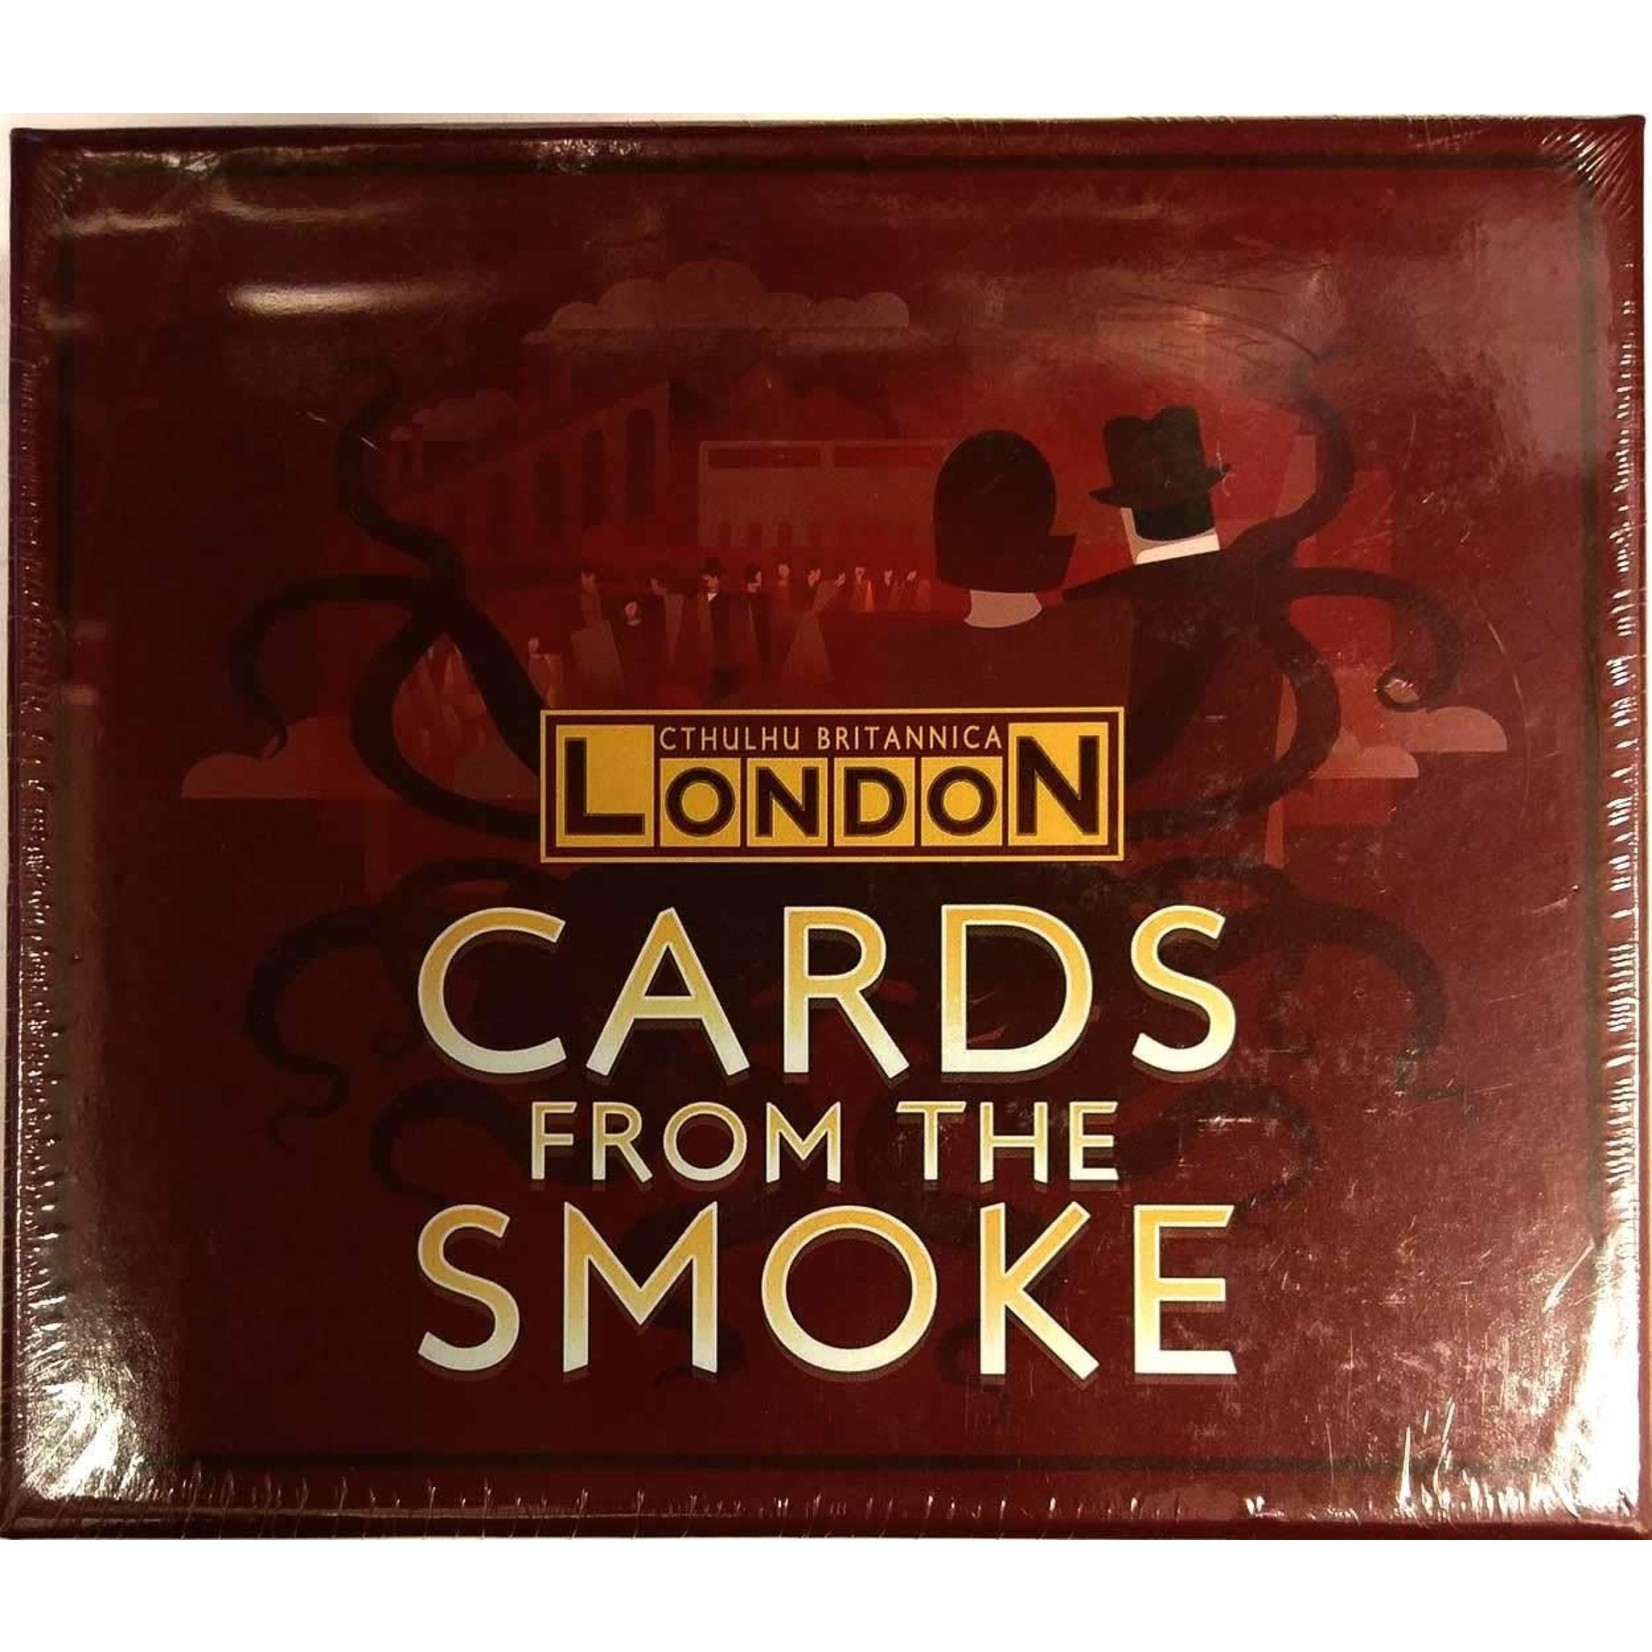 Cthulhu Britannica: Card from the Smoke